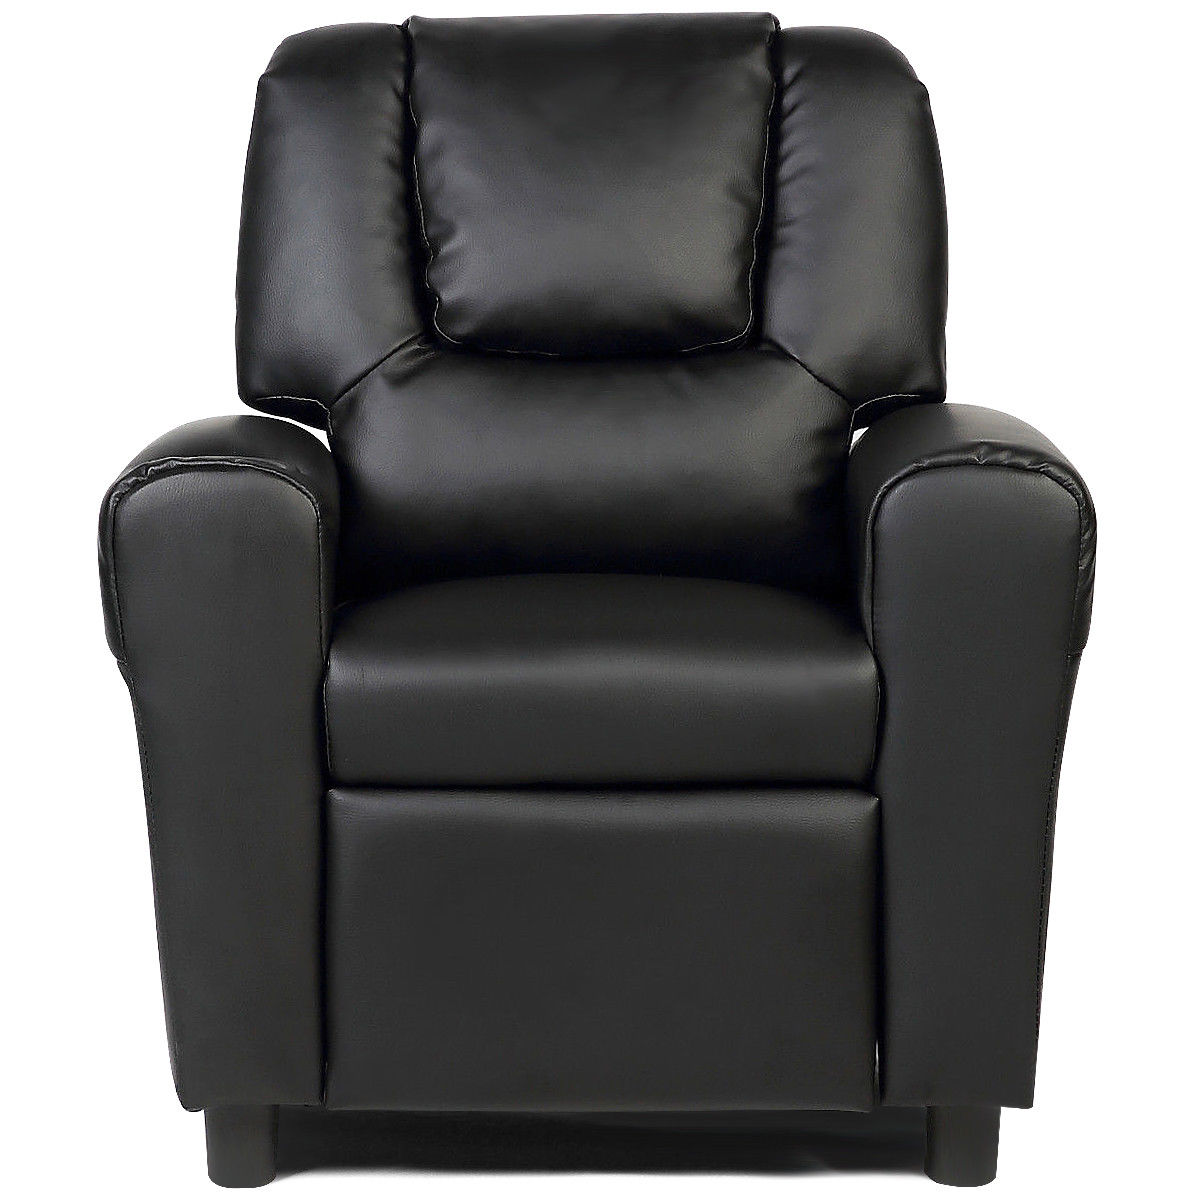 Costway Kids Recliner Armchair Children's Furniture Sofa Seat Couch Chair W/Cup Holder Black